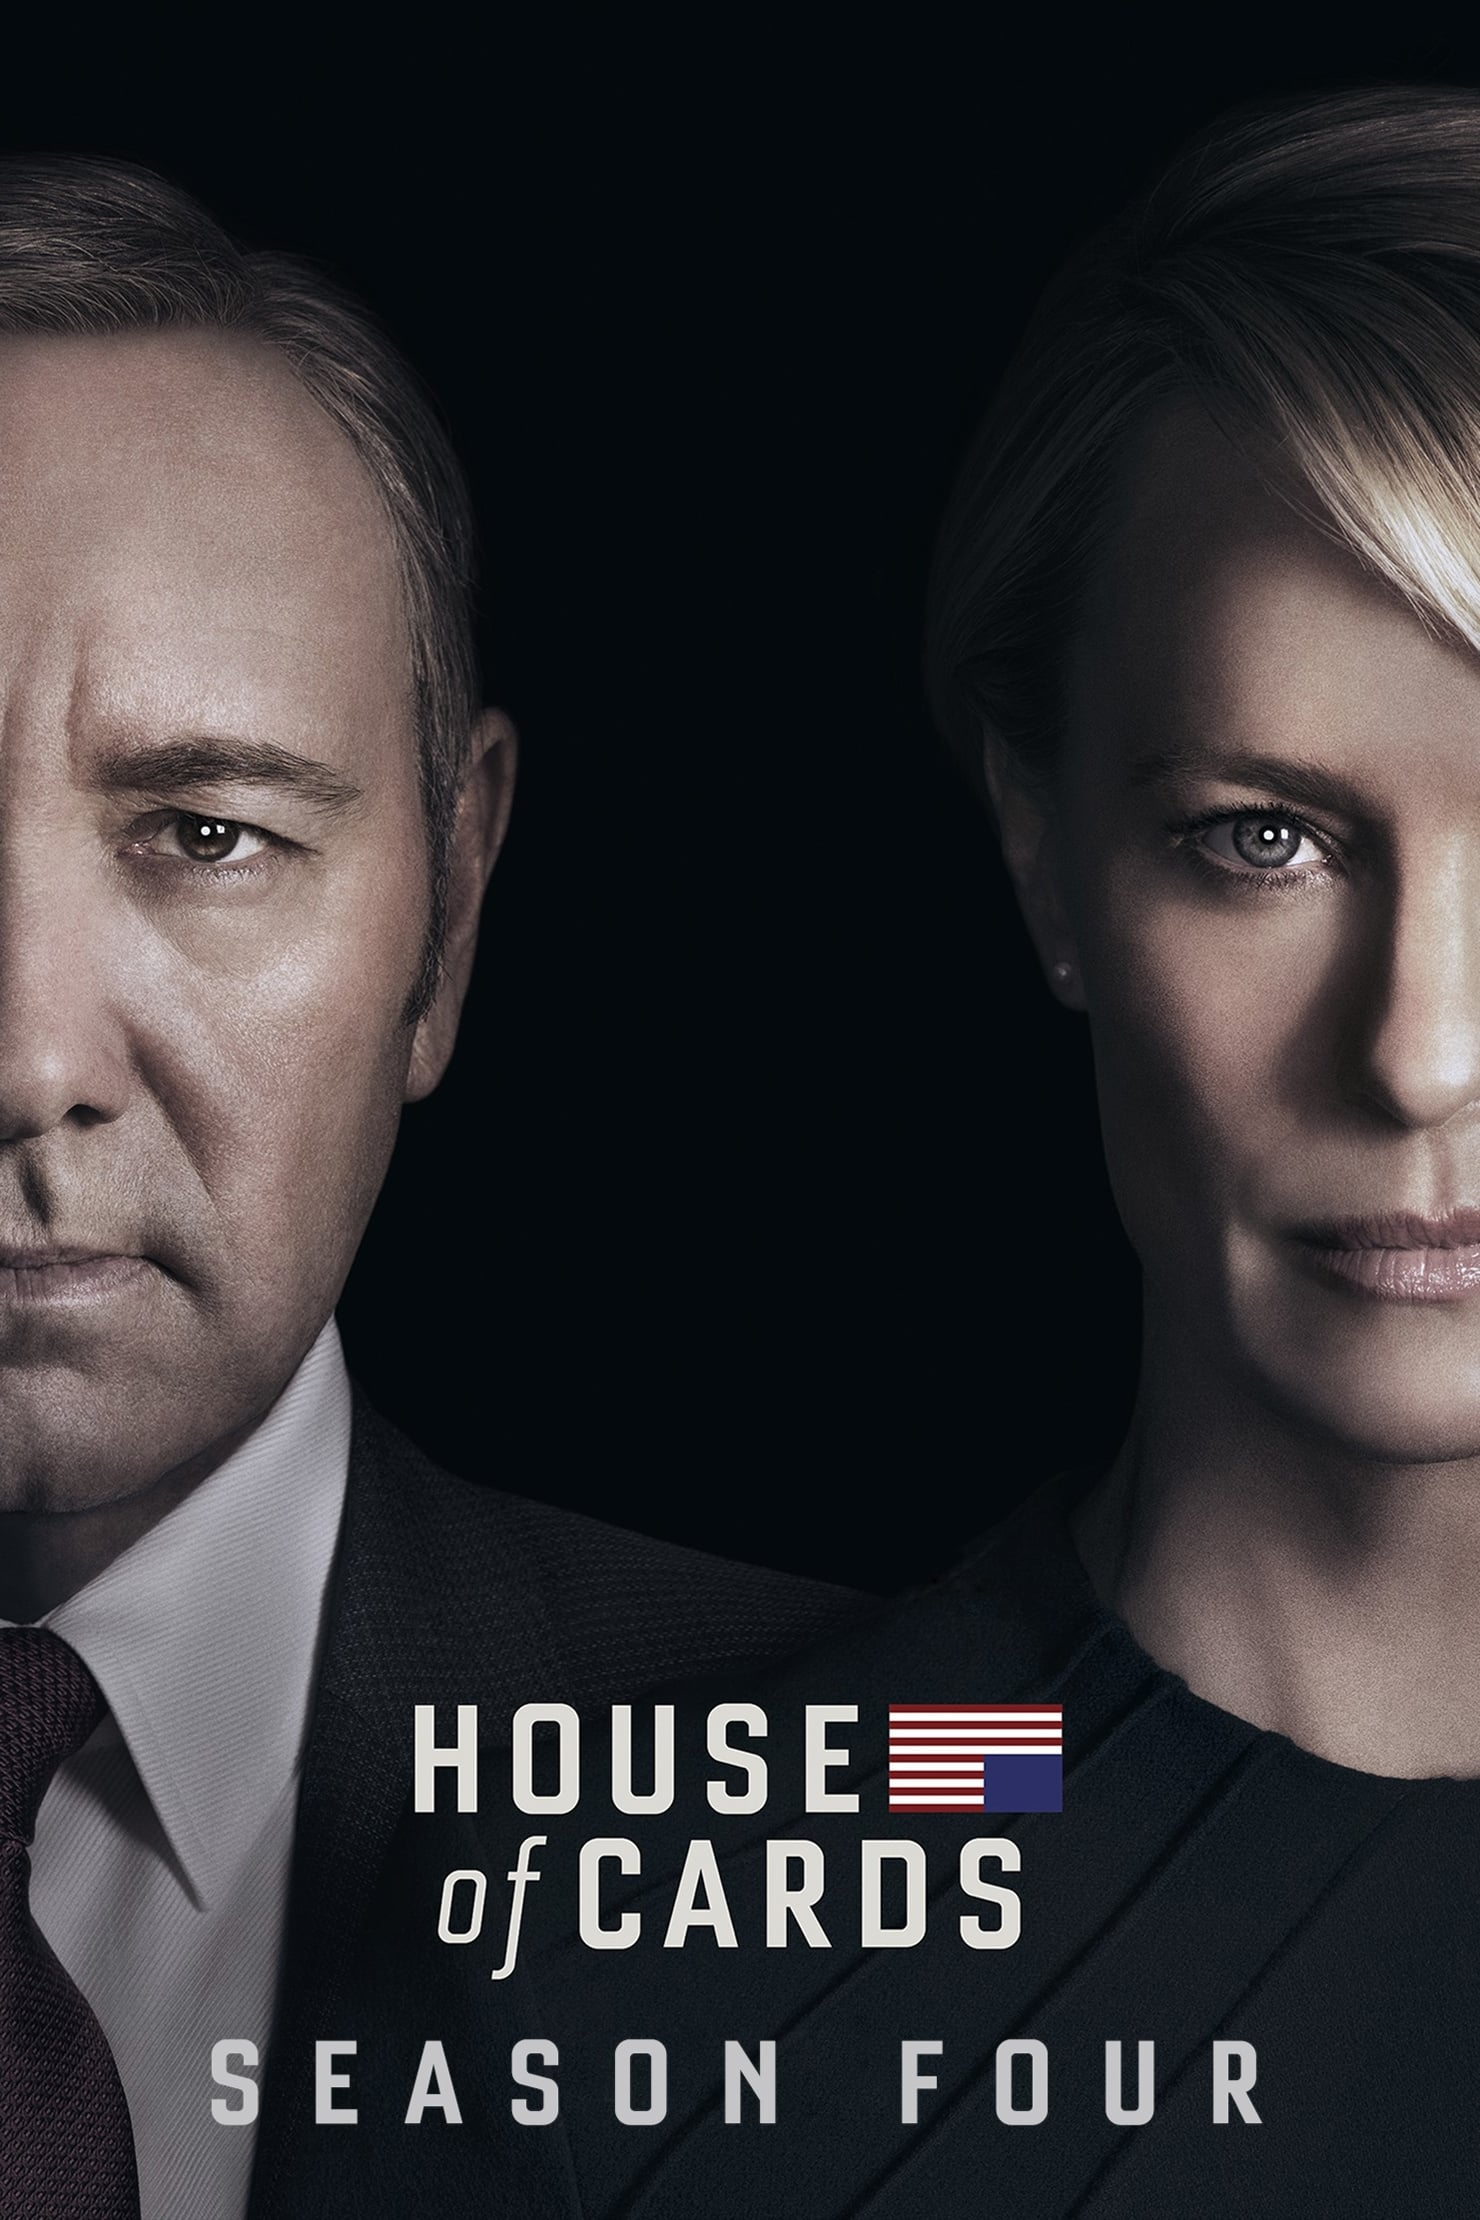 House of Cards Season 4